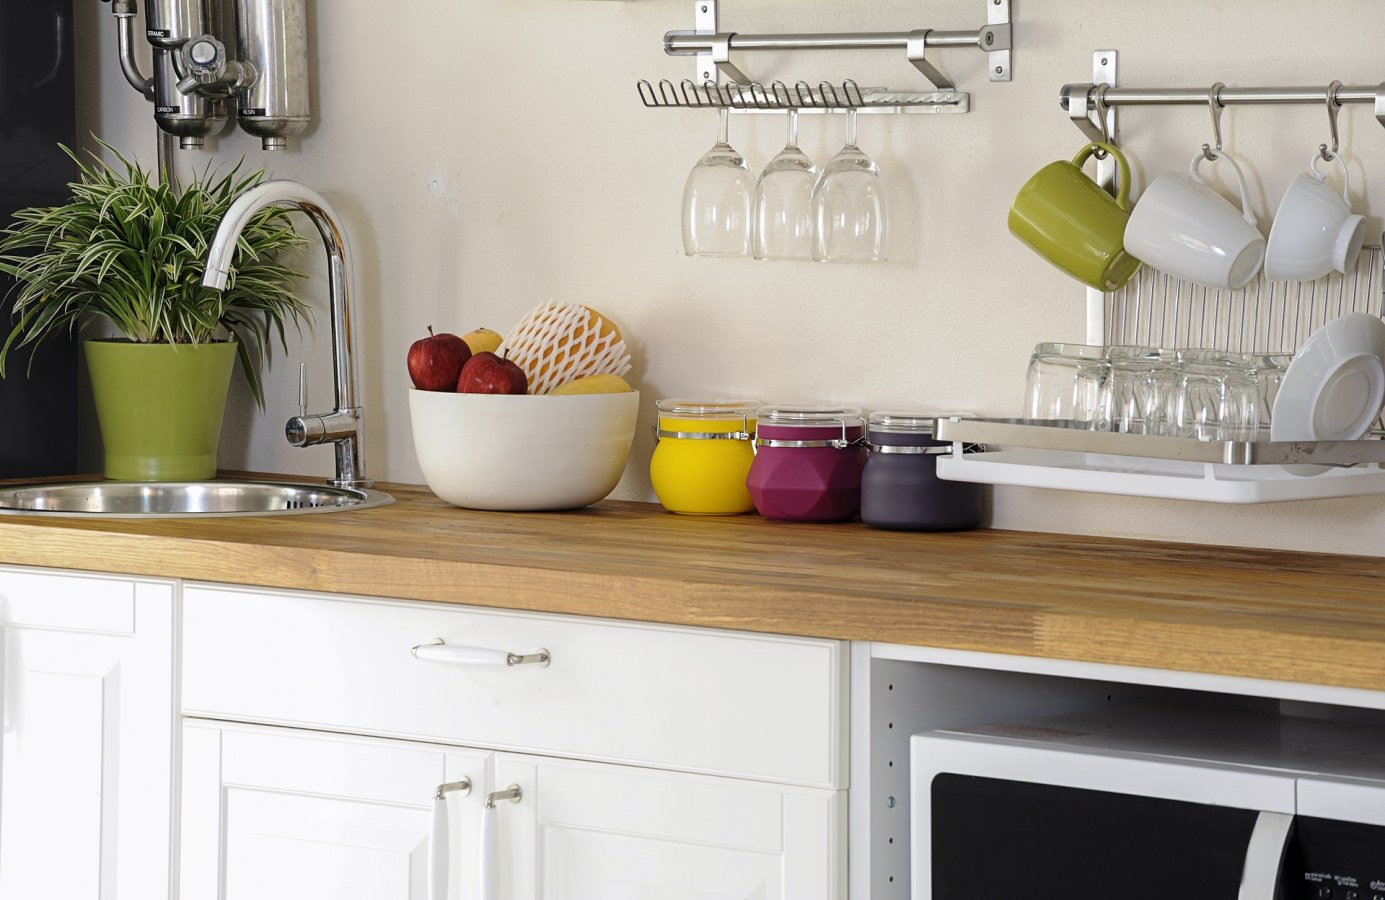 Add a place rack to make your kitchen look more homely and colourful